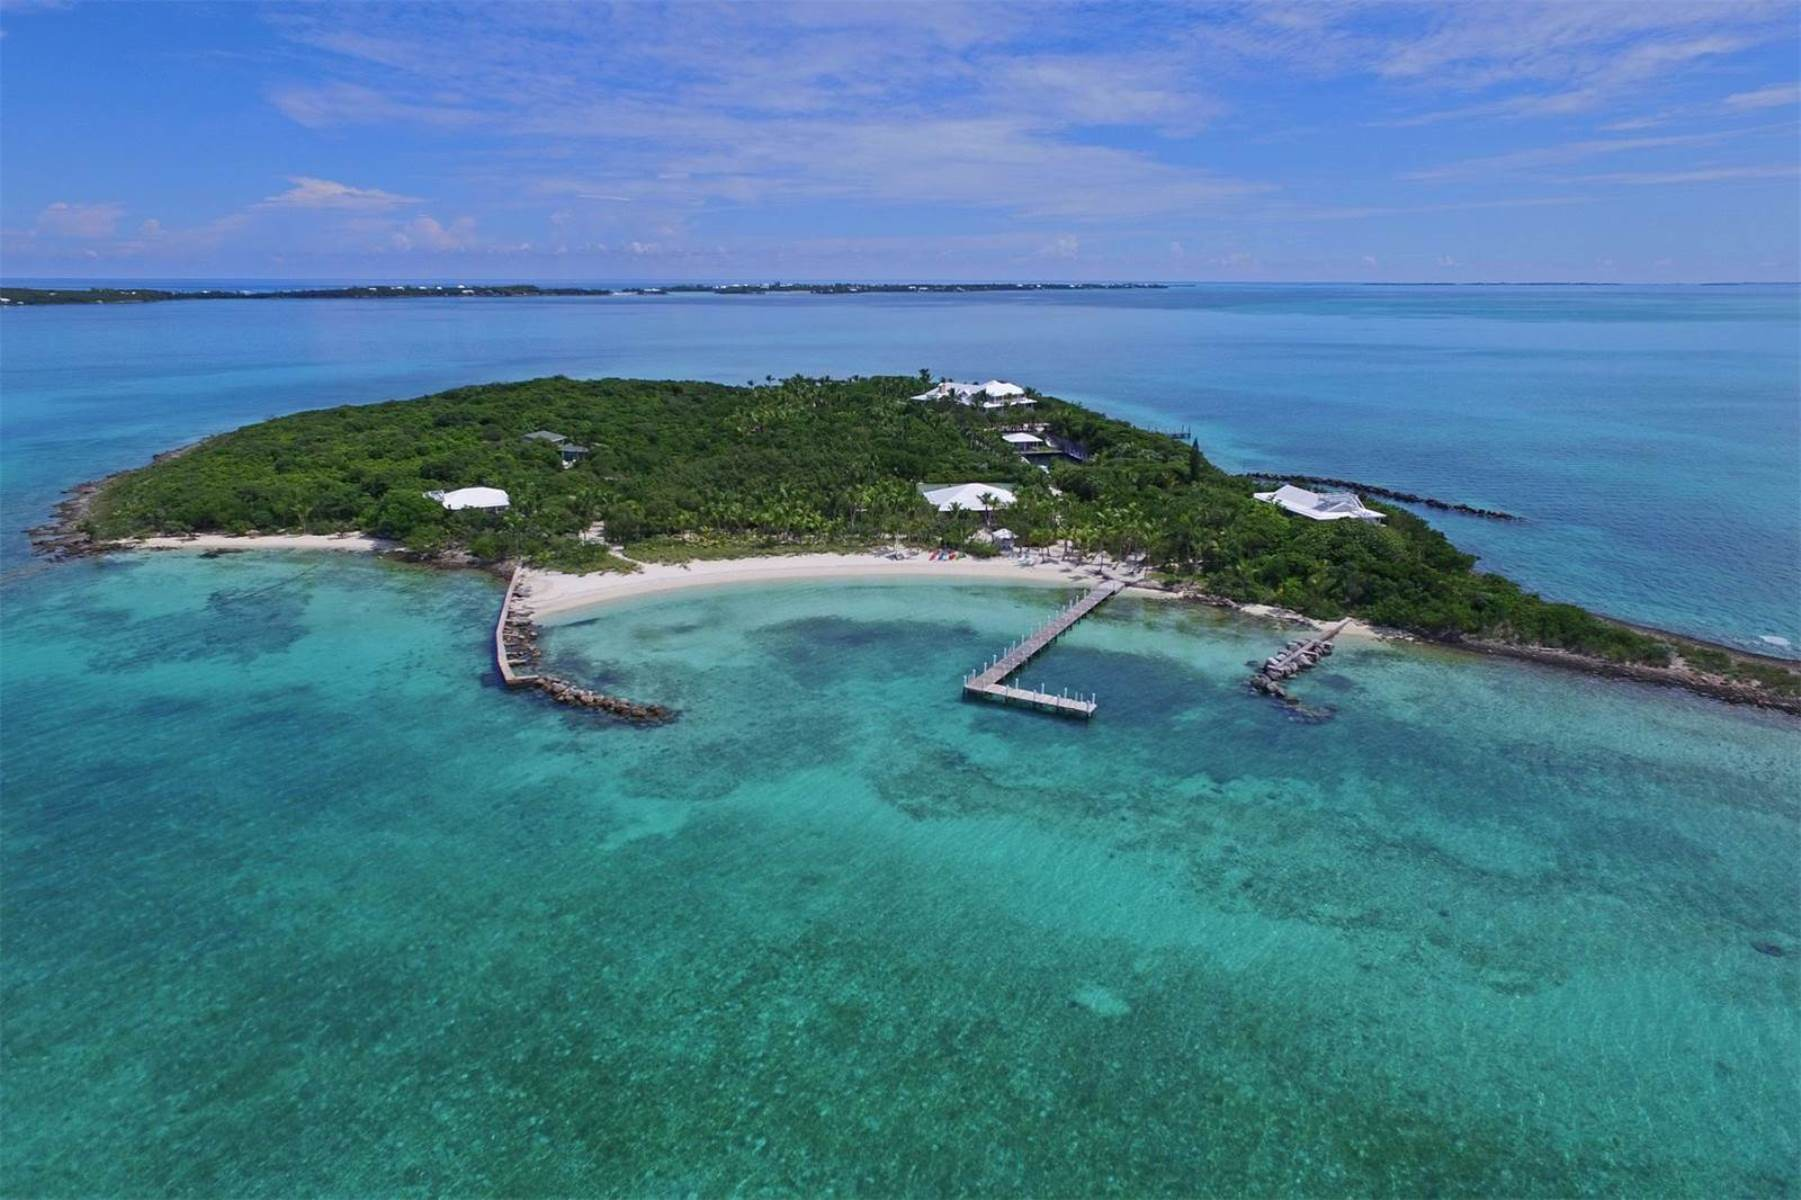 Private Island for Sale at Foots Cay Guana Cay, Abaco, Bahamas